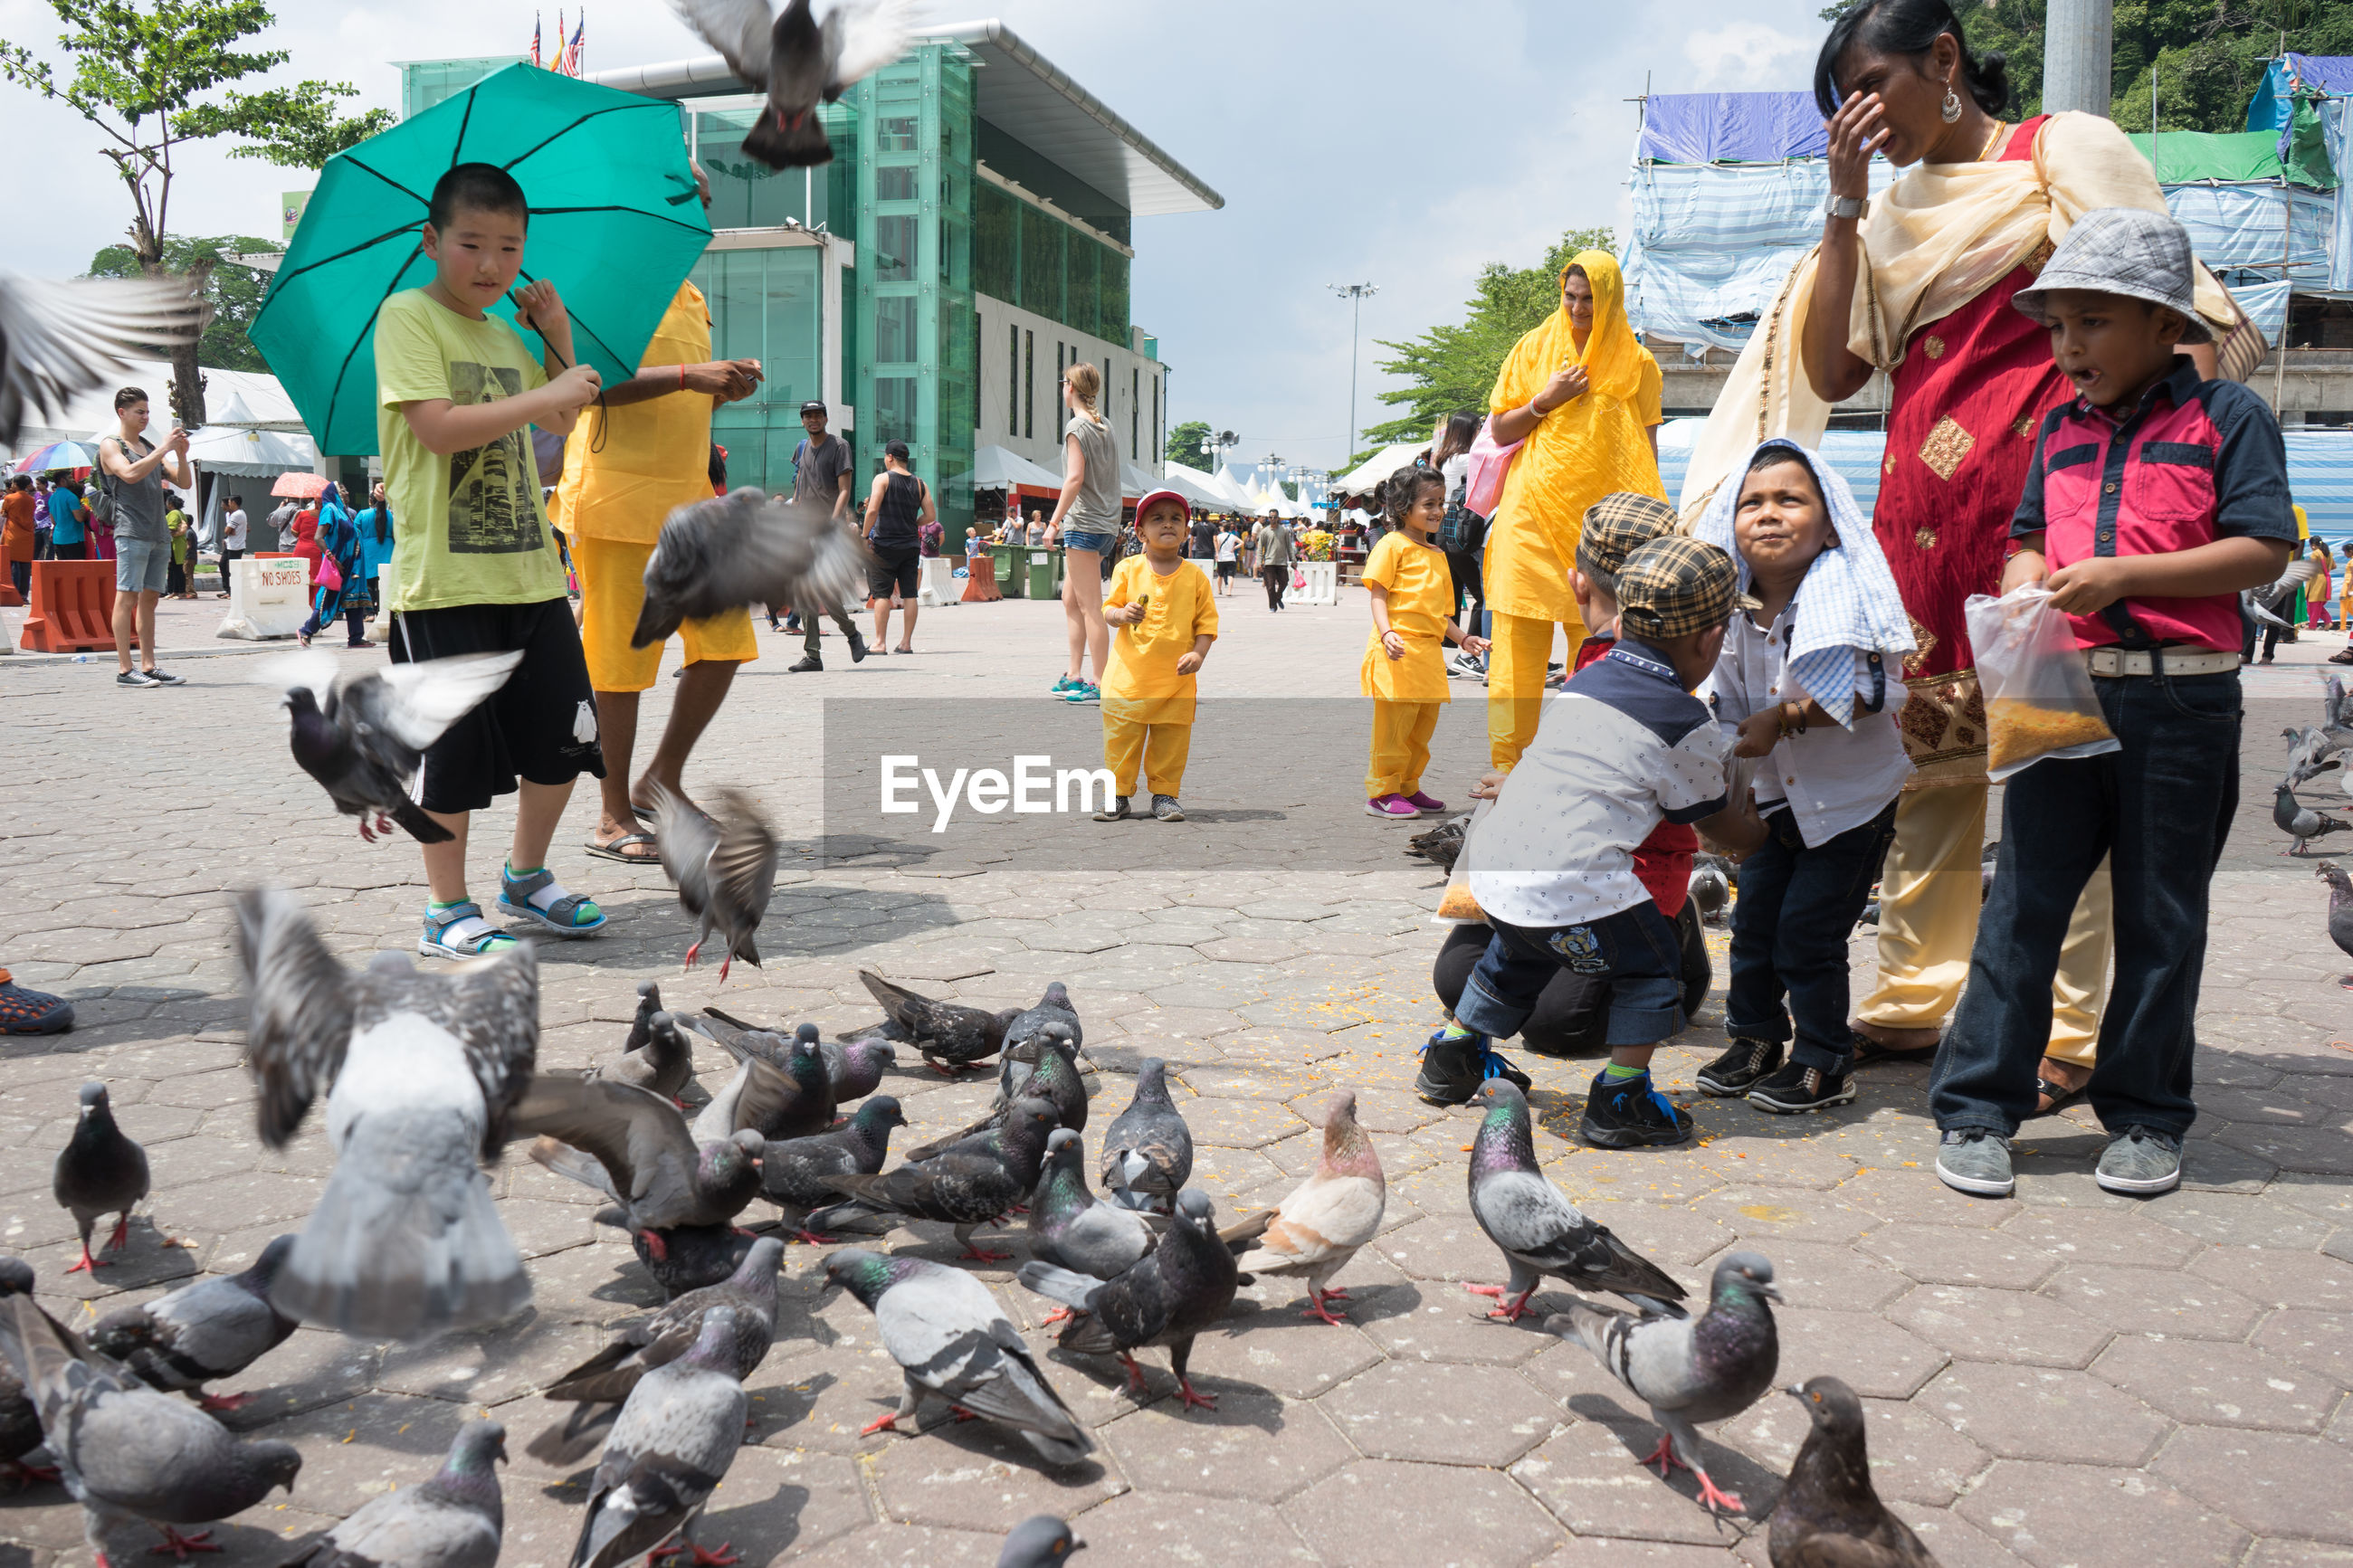 large group of animals, real people, bird, street, motion, building exterior, outdoors, day, flying, flock of birds, large group of people, city, built structure, animals in the wild, togetherness, lifestyles, men, domestic animals, mammal, architecture, full length, spread wings, people